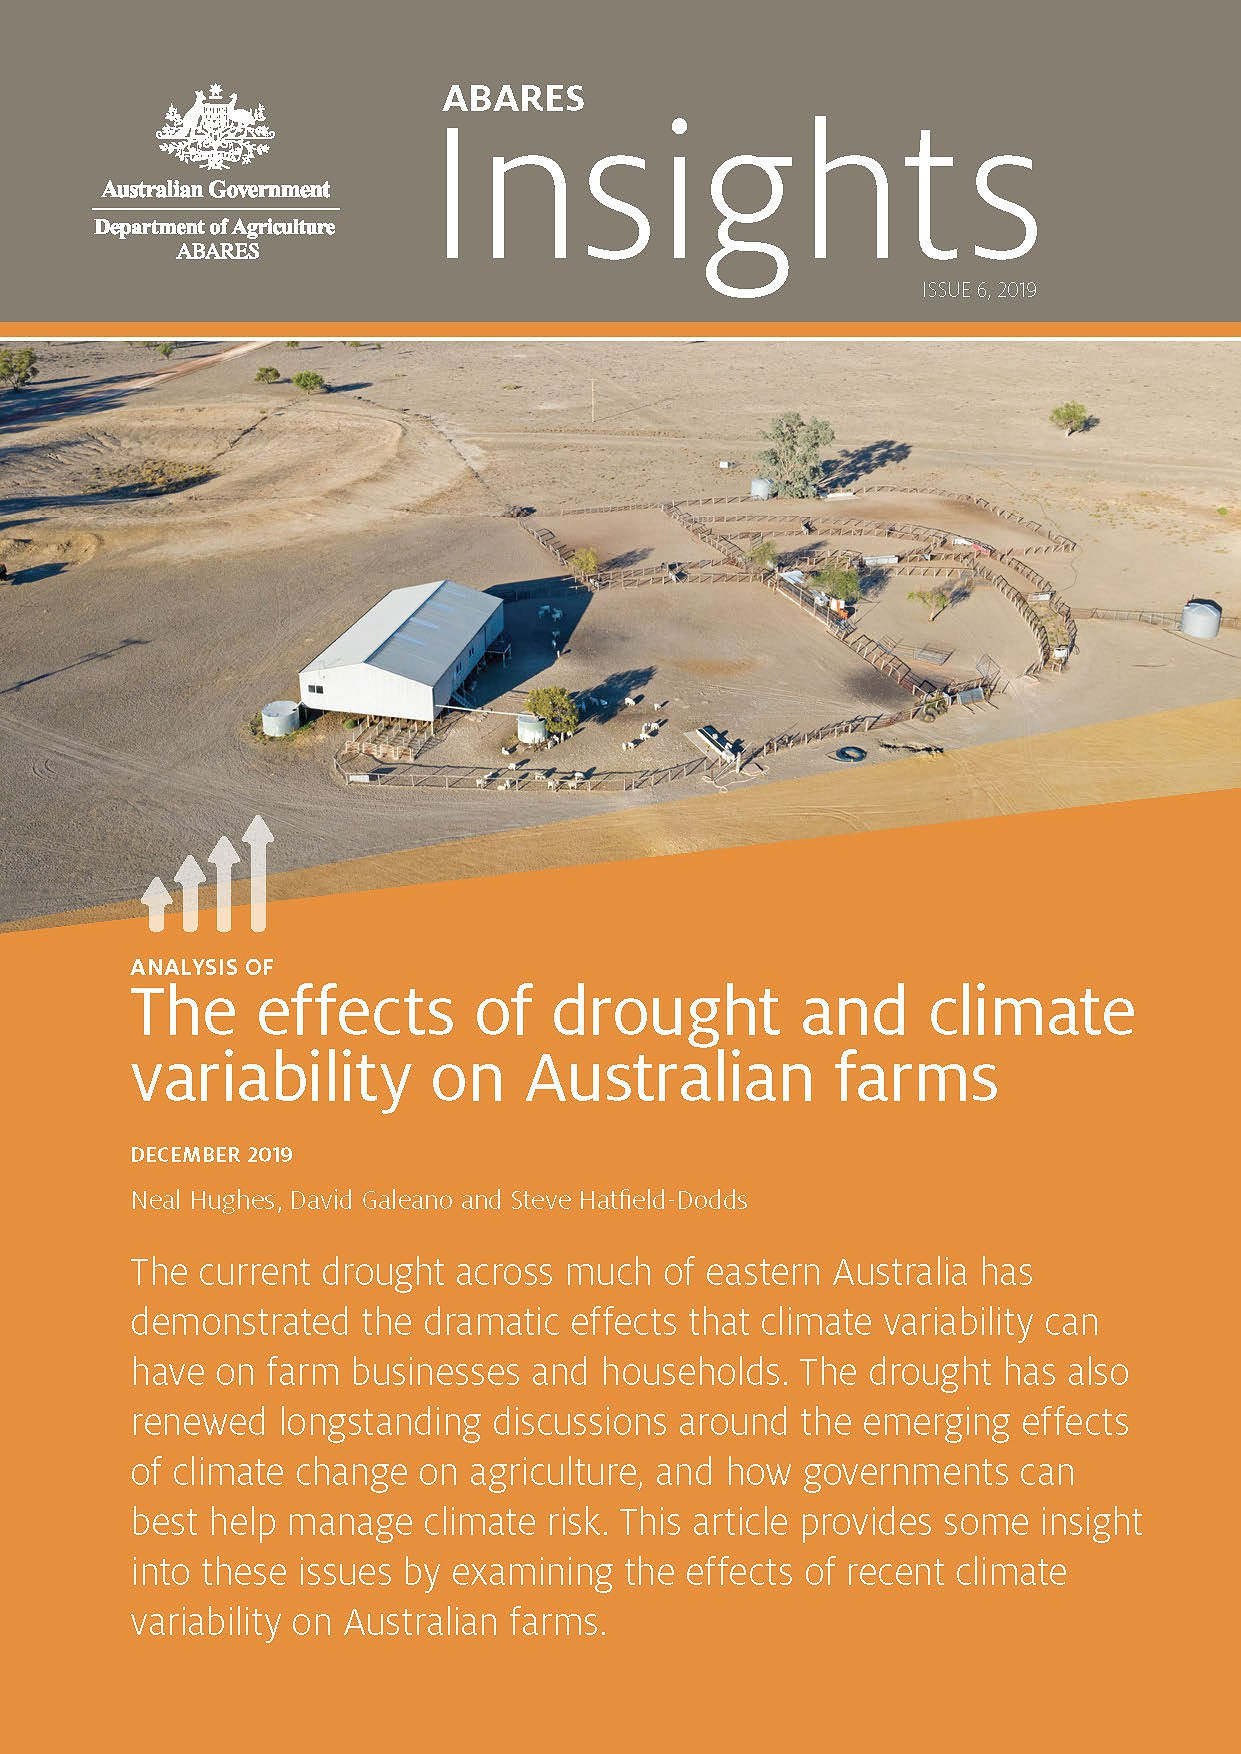 The Effects of Drought and Climate Variability on Australian Farms